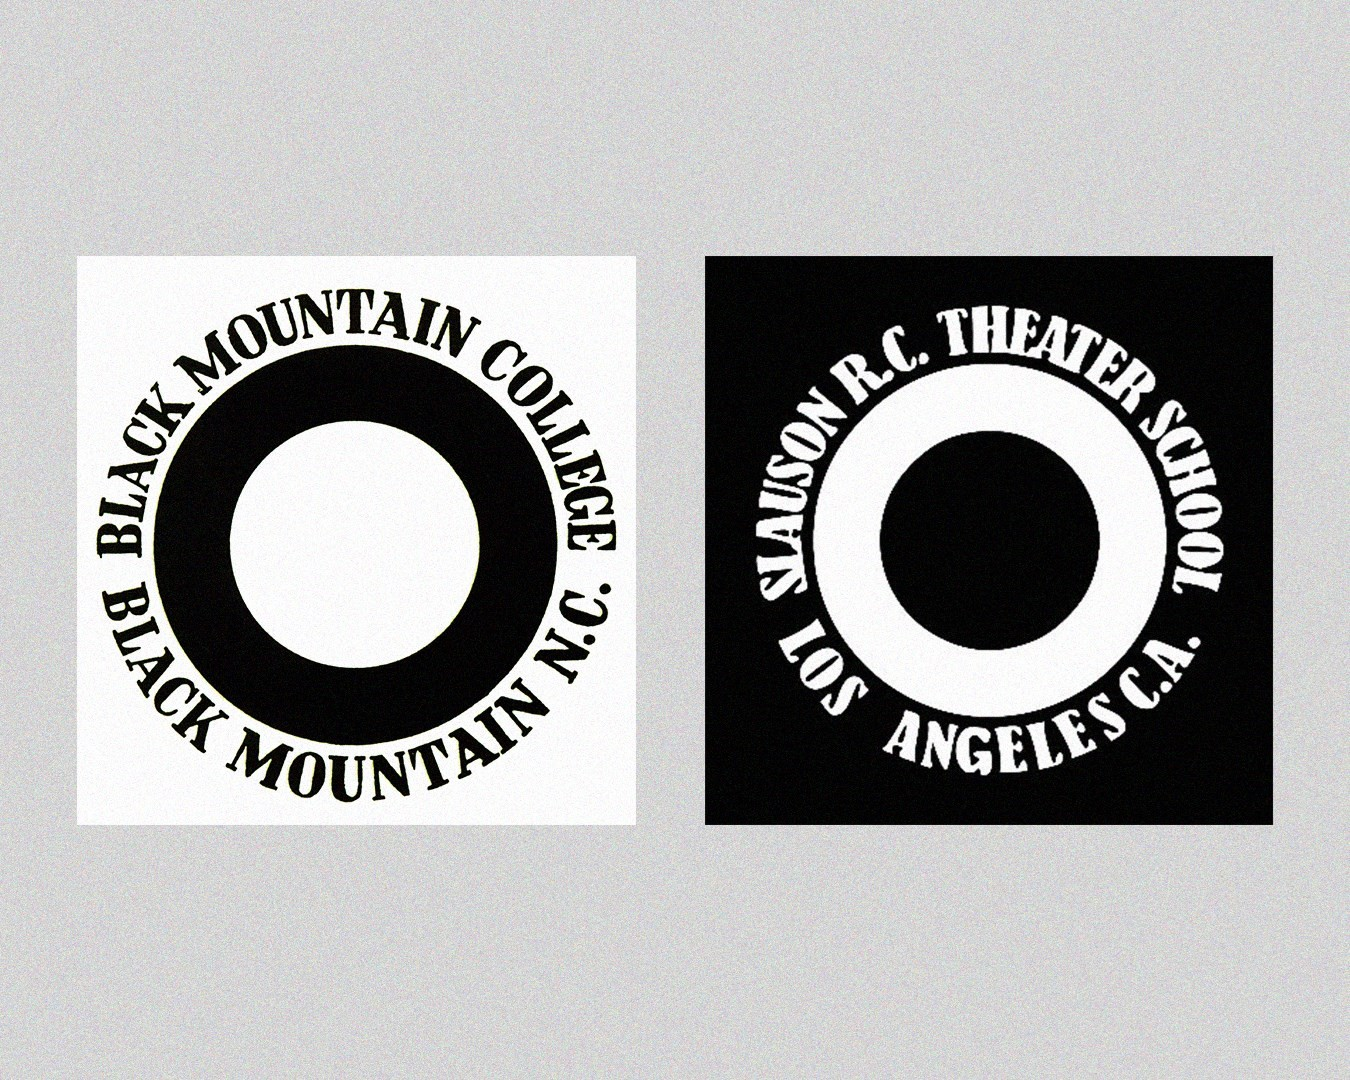 Slauson Rec and Black Mountain College logos